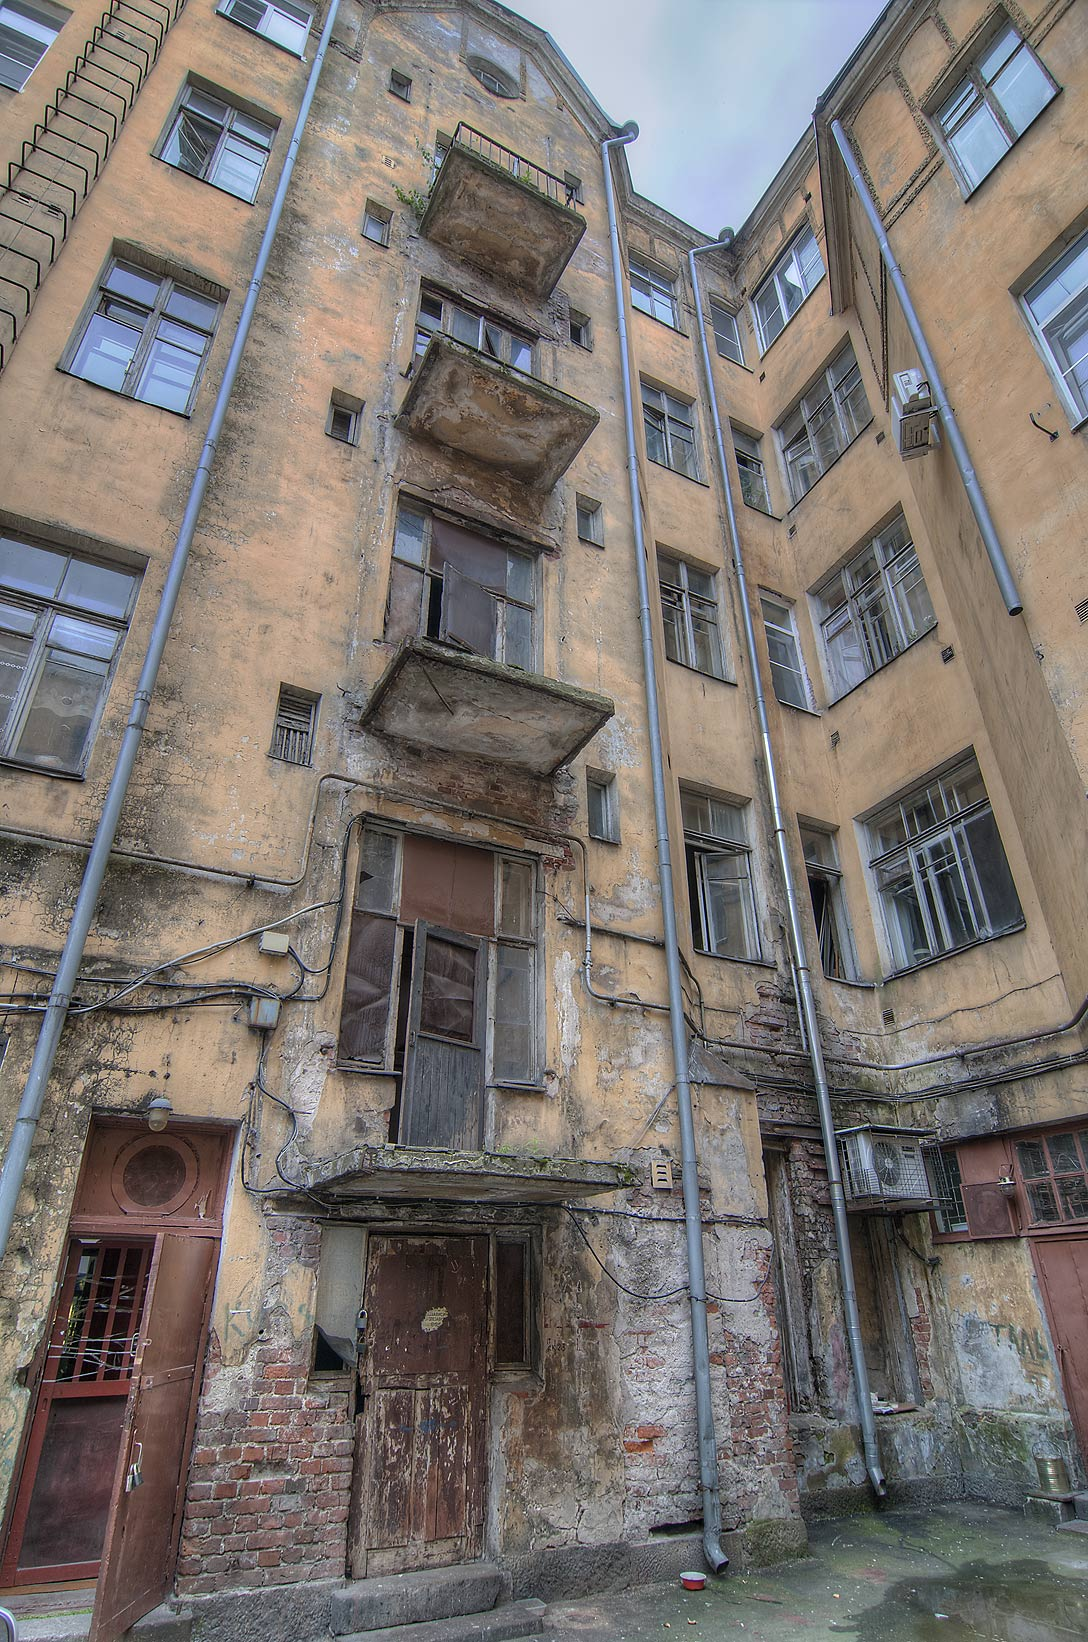 Balconies at 6 Lenina St. showing water damage. Vyborg, Russia